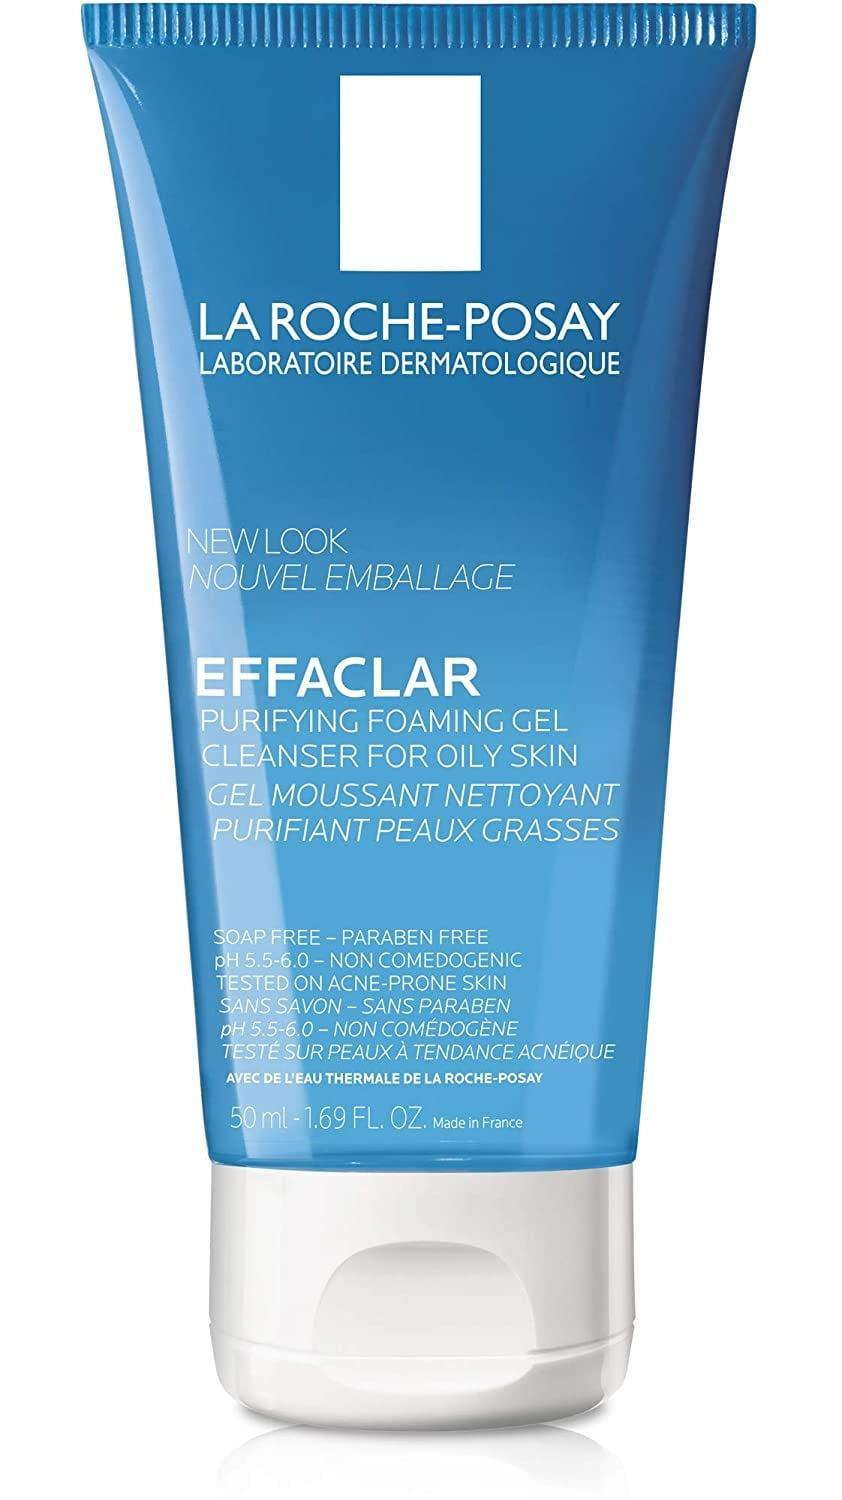 <p>Dr. Fassihi recommended the <span>La Roche-Posay Effaclar Purifying Foaming Gel Cleanser</span> ($8) as a daily face wash (provided you don't experience irritation) for those who are on the oilier side and currently have spots, as well as teenagers who are experiencing breakouts. She also rates this product as a body wash if you have acne on your back or congestion on your chest.</p>